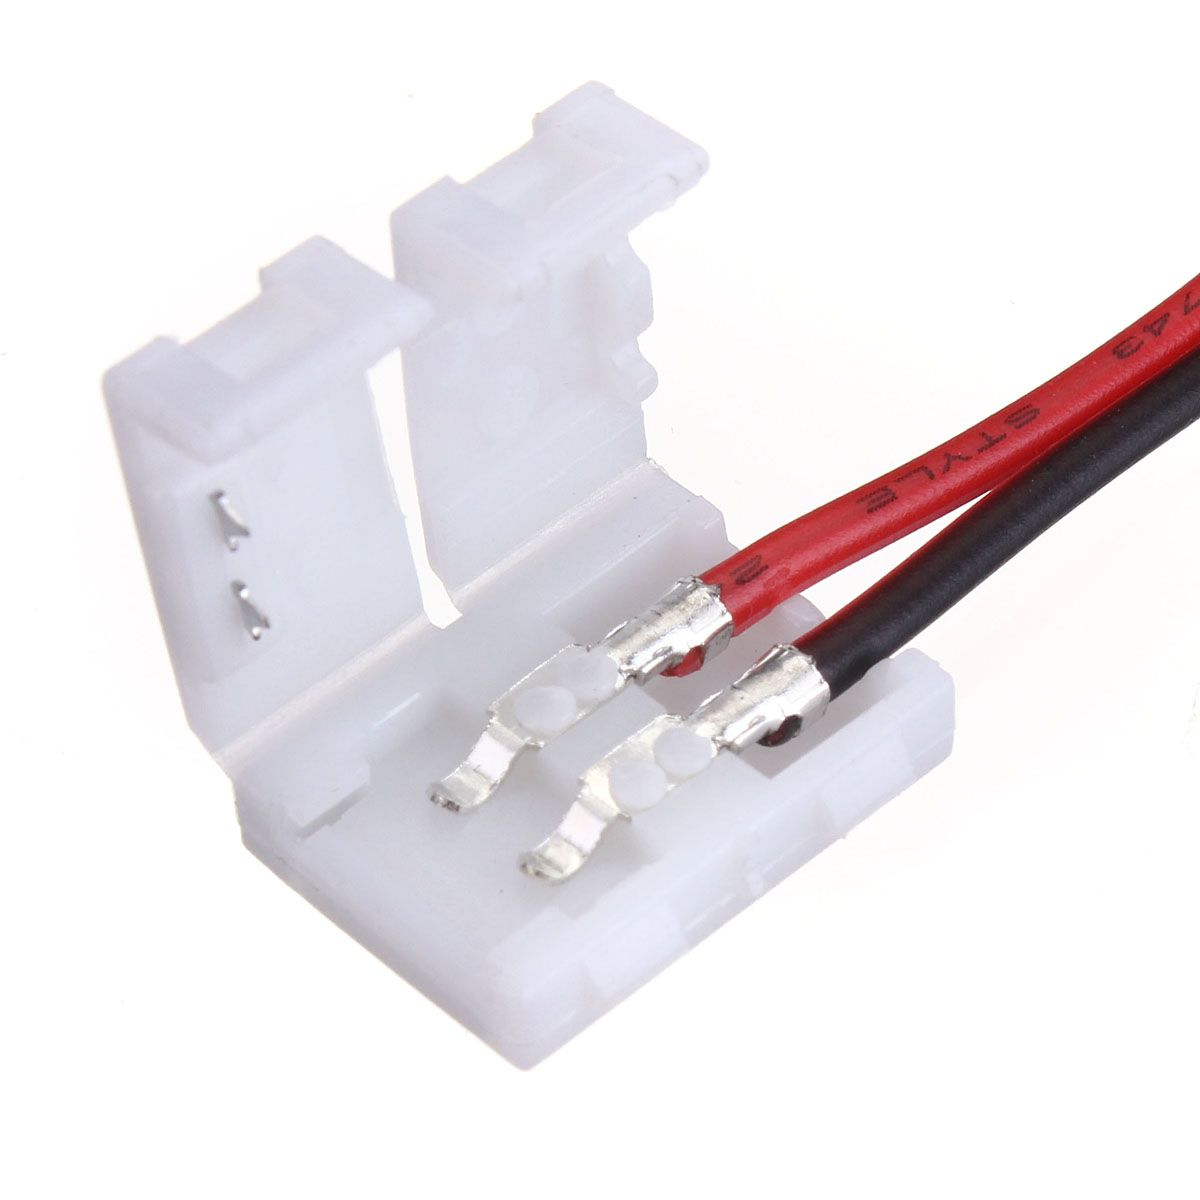 5x10mm 5050 Led Light Strip To Wire Connector Pcb Adapter 2pin White Extension Cable Cord For 3528 Rgb Ebay